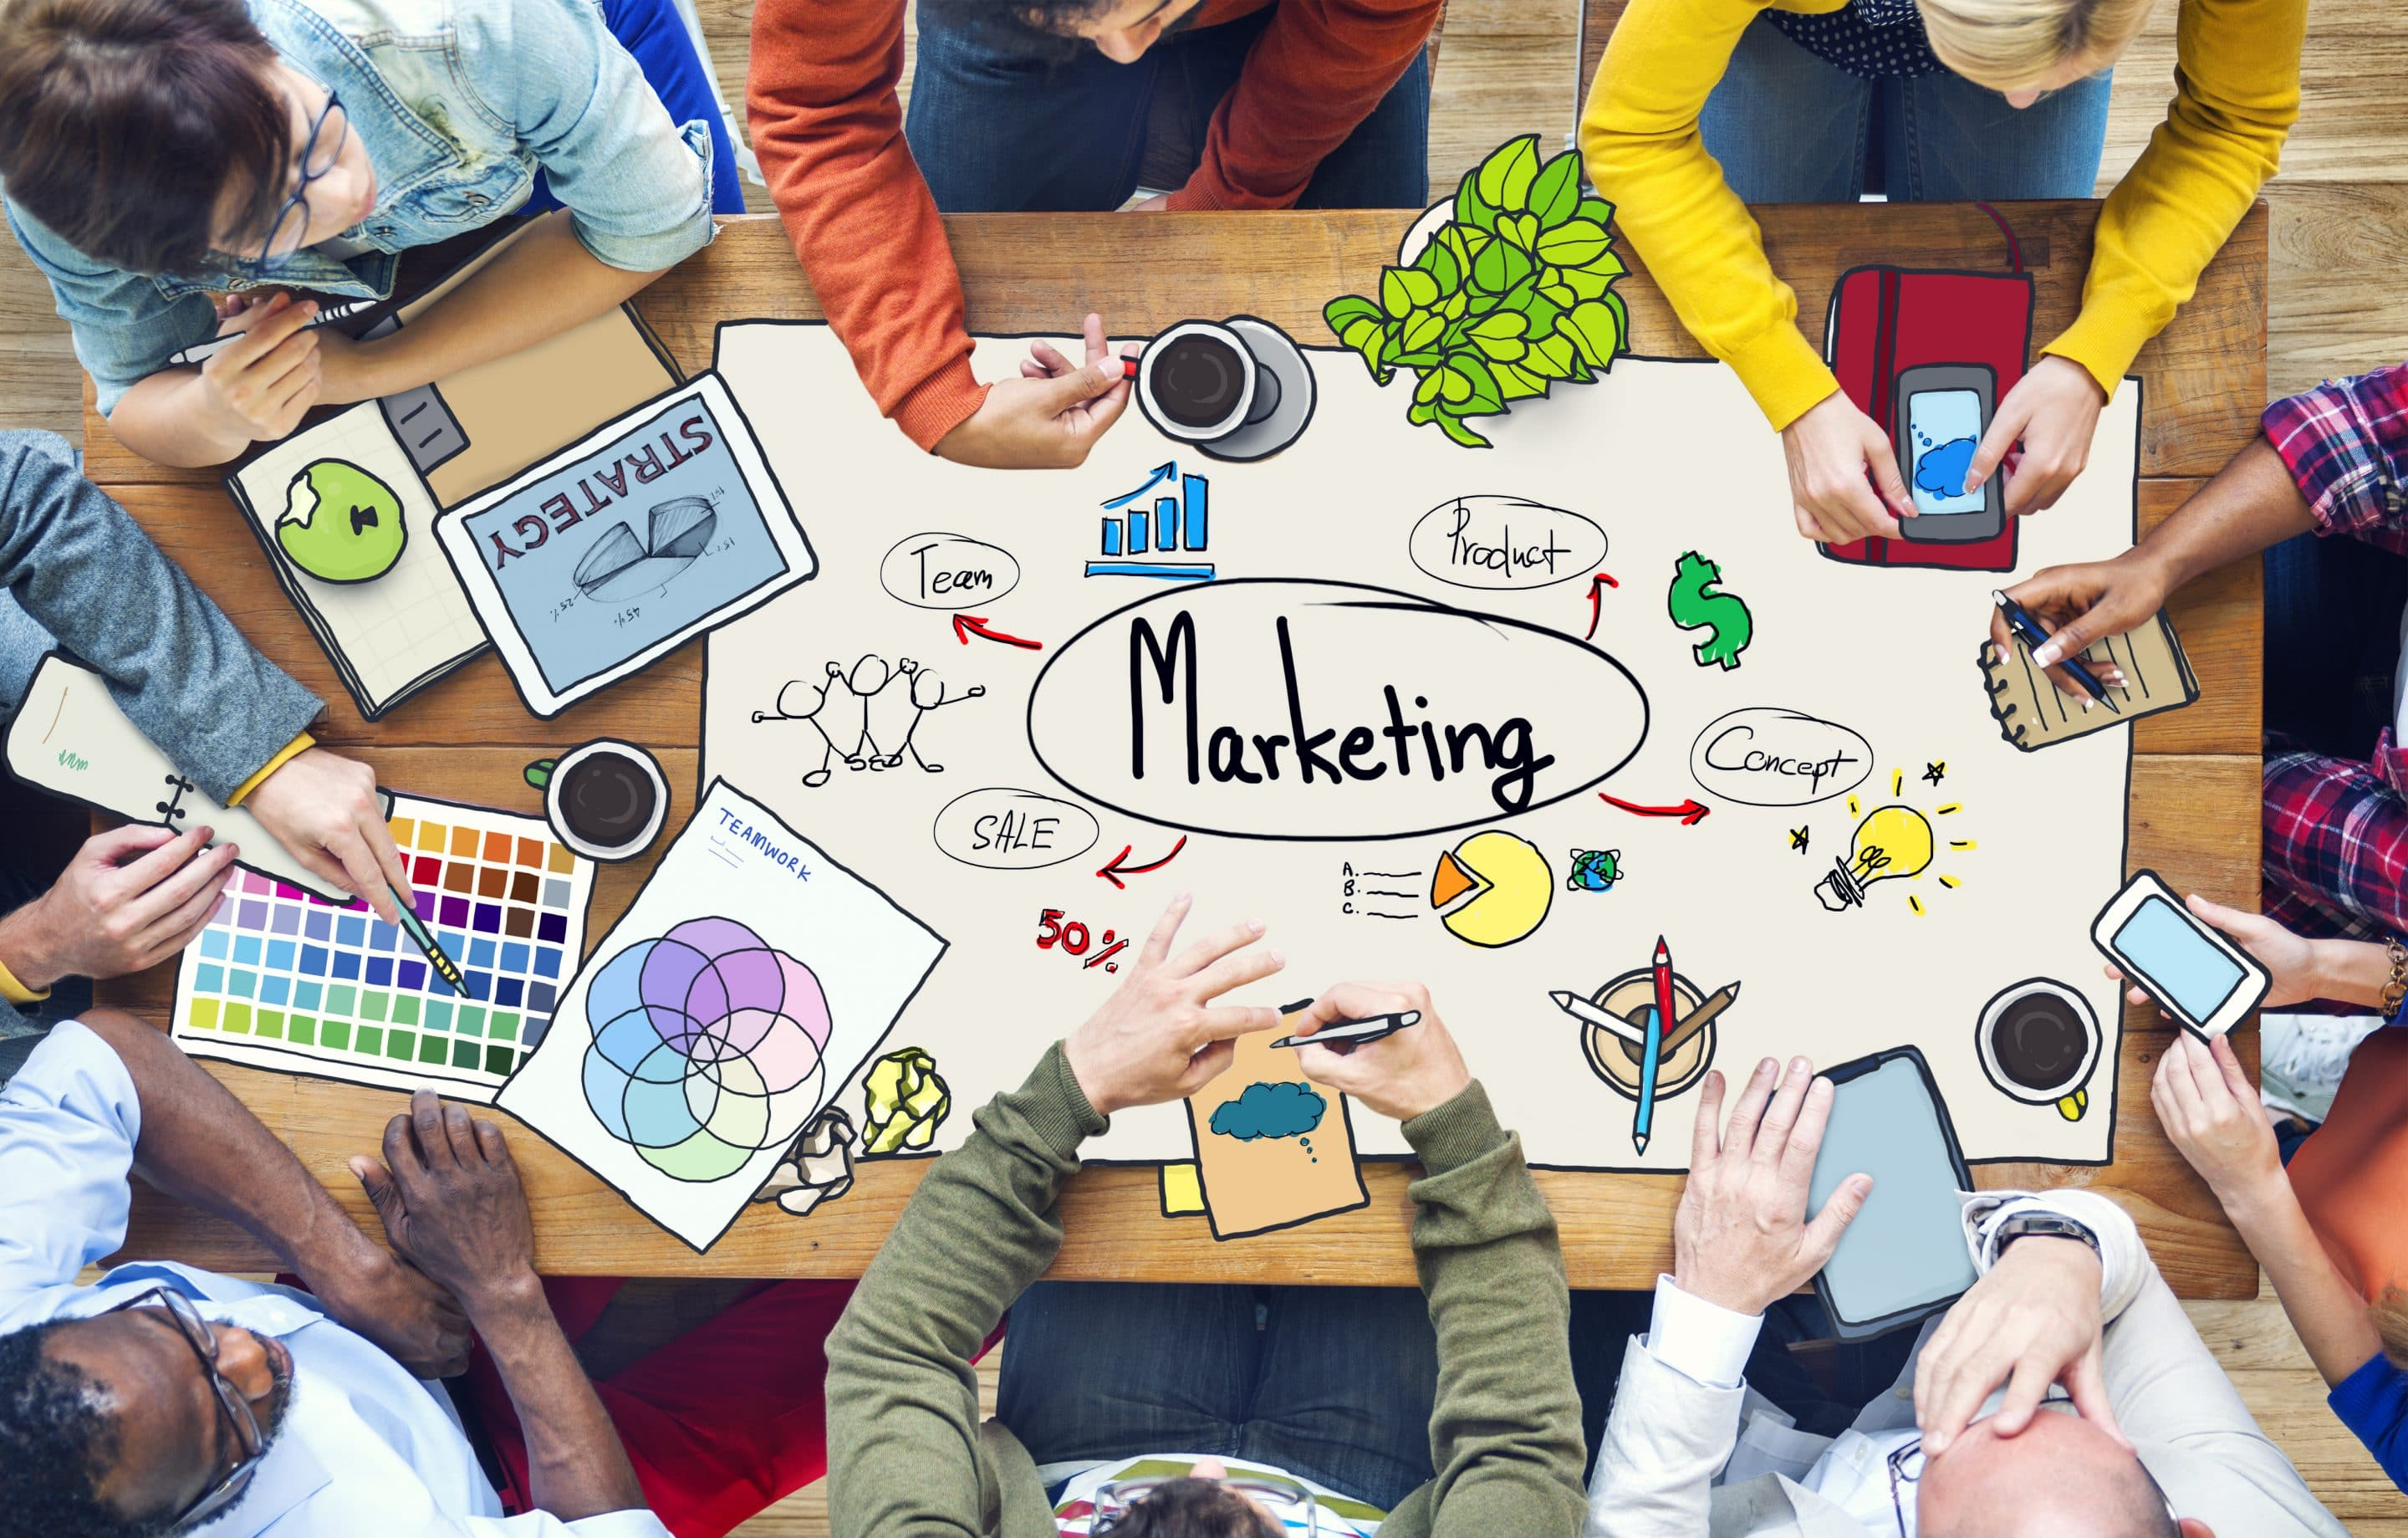 9 Things You Need for a Successful Marketing Strategy in 2020